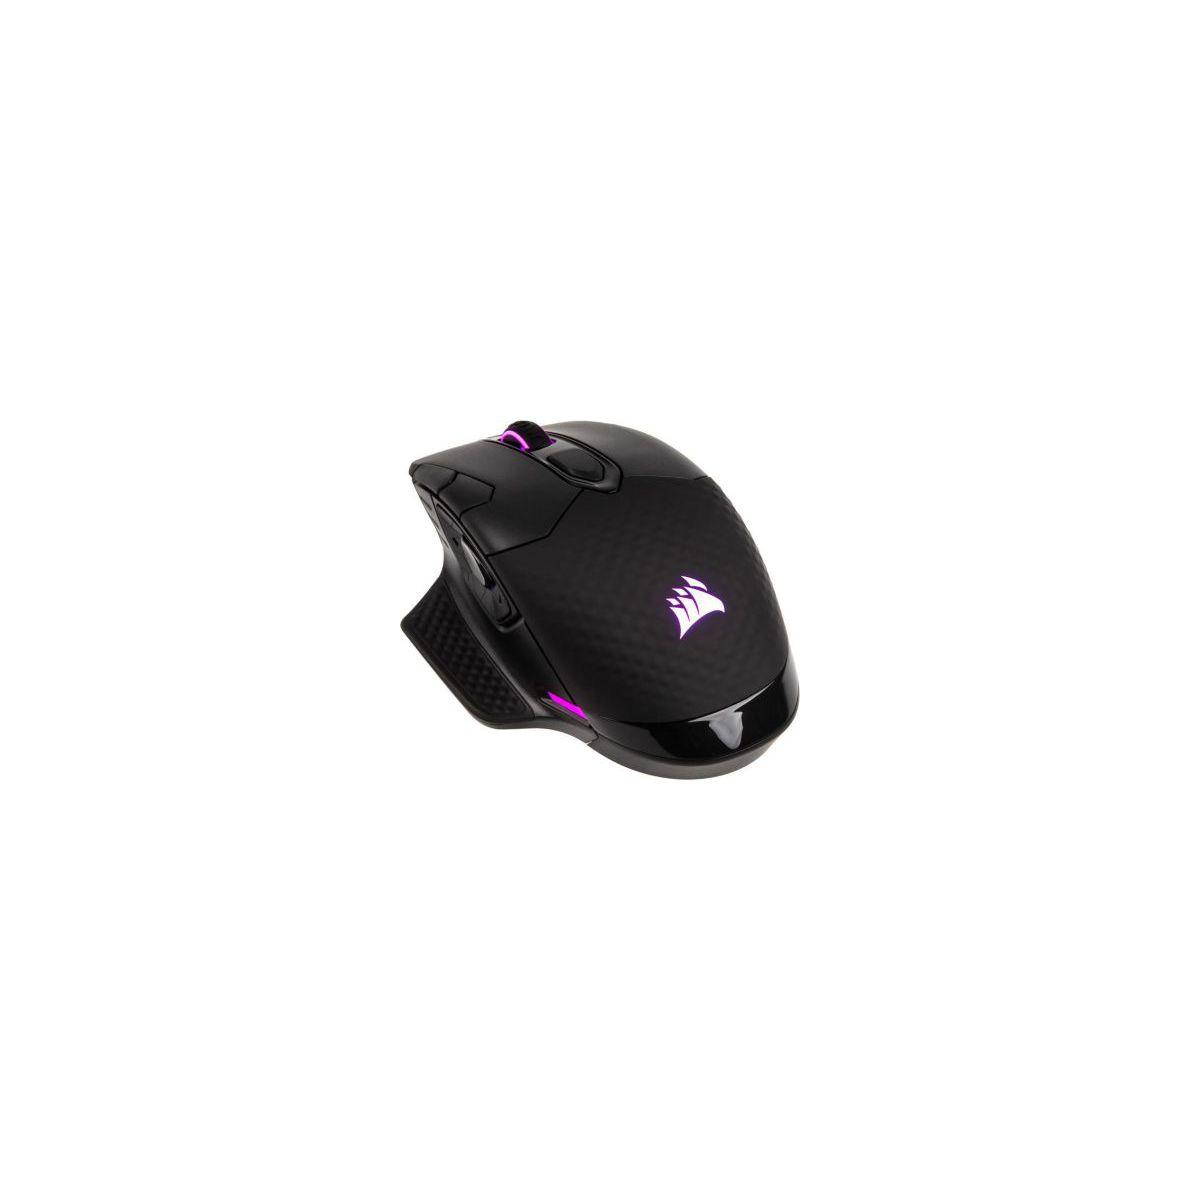 Souris gamer corsair dark core rgb performance - 15% de remise...